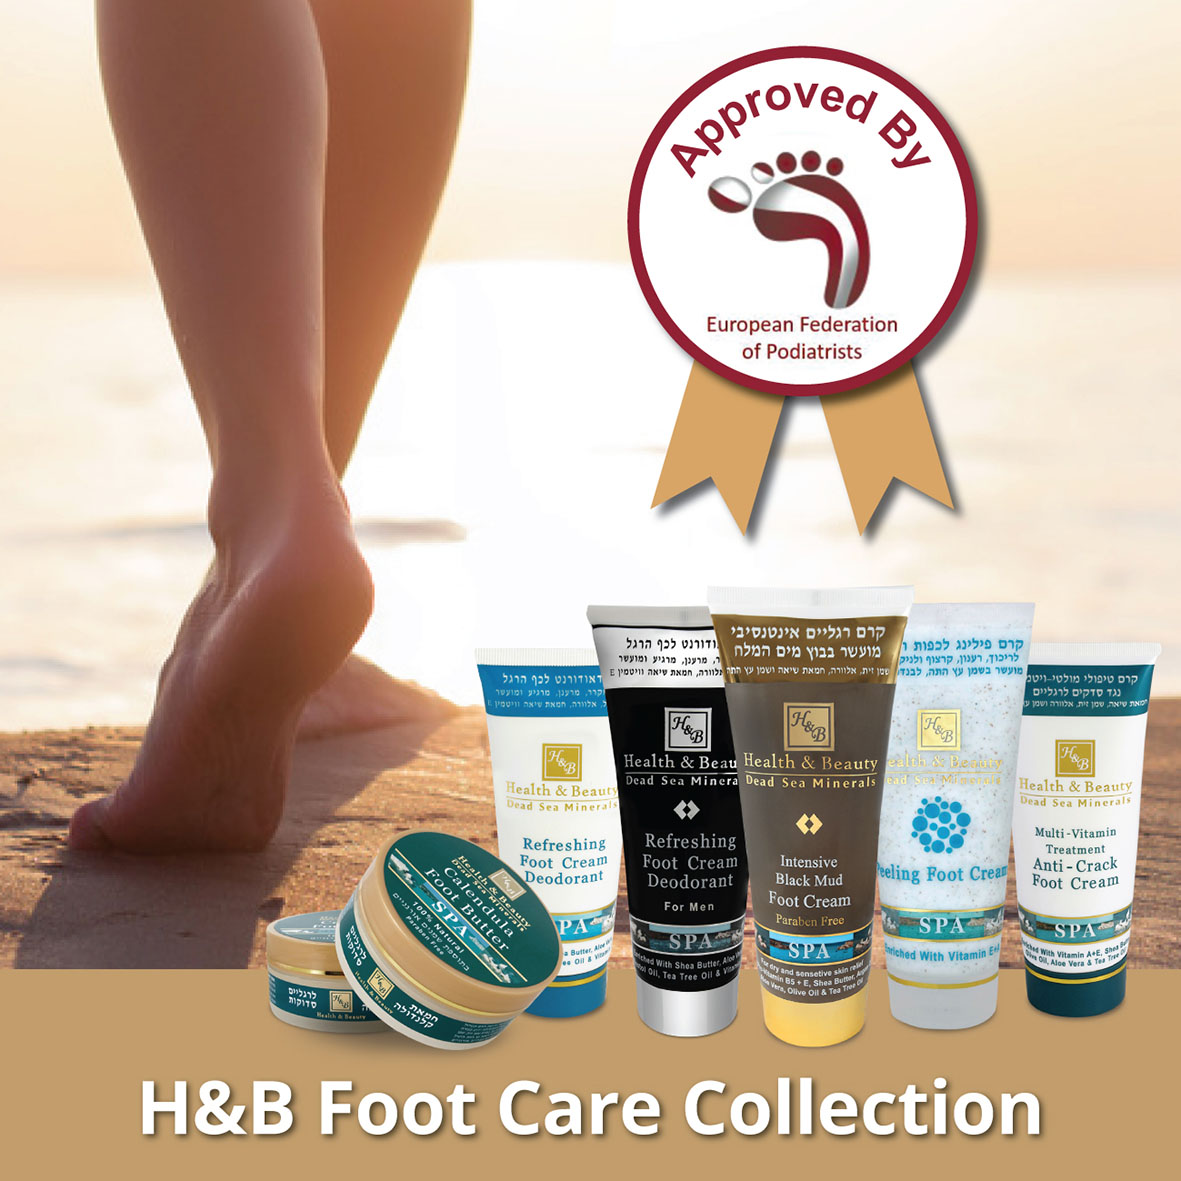 Our summer foot care tips